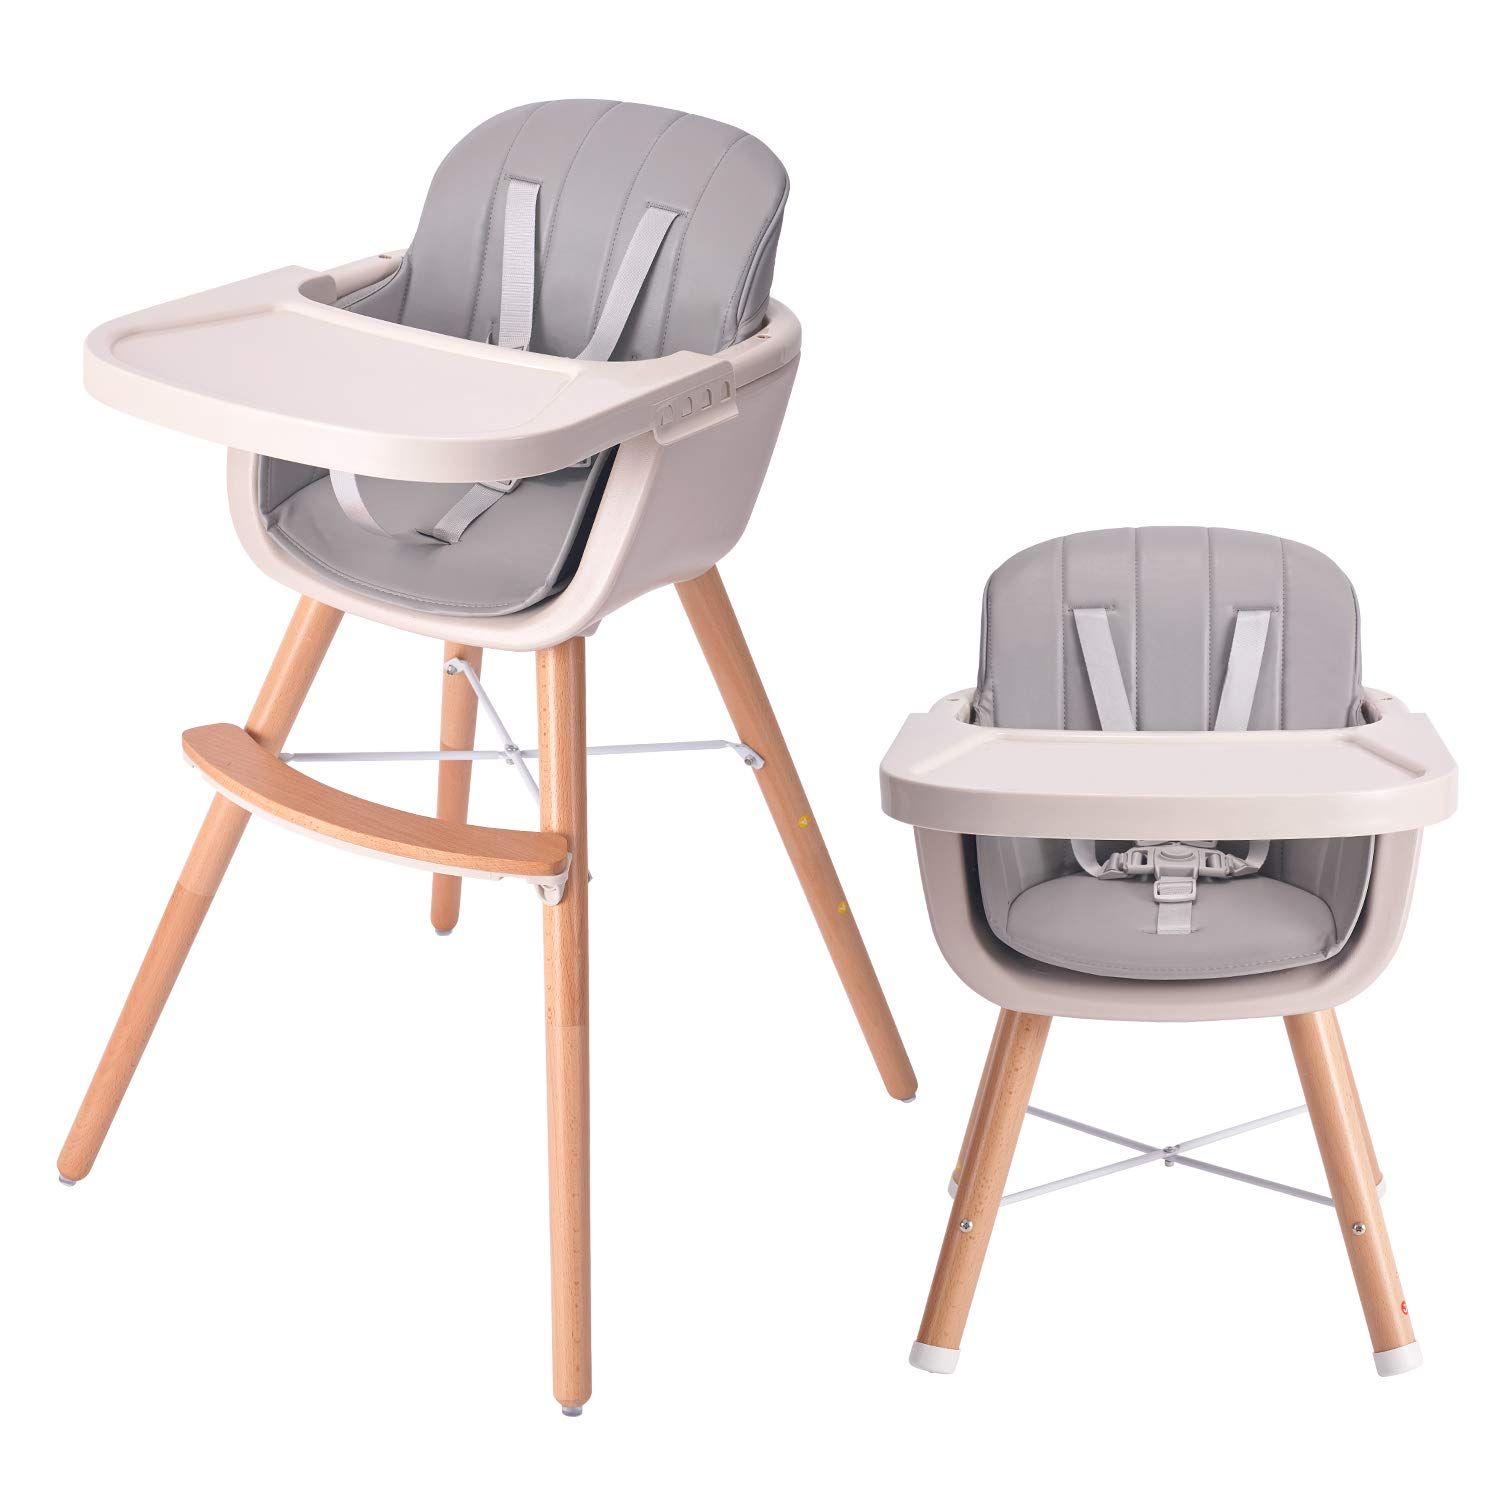 HAN-MM Baby High Chair with Removable Gray Tray, Wooden High Chair, Adjustable Legs, Harness, Feeding Baby High Chairs for Baby/Infants/Toddlers Style 2 Grey by HAN-MM